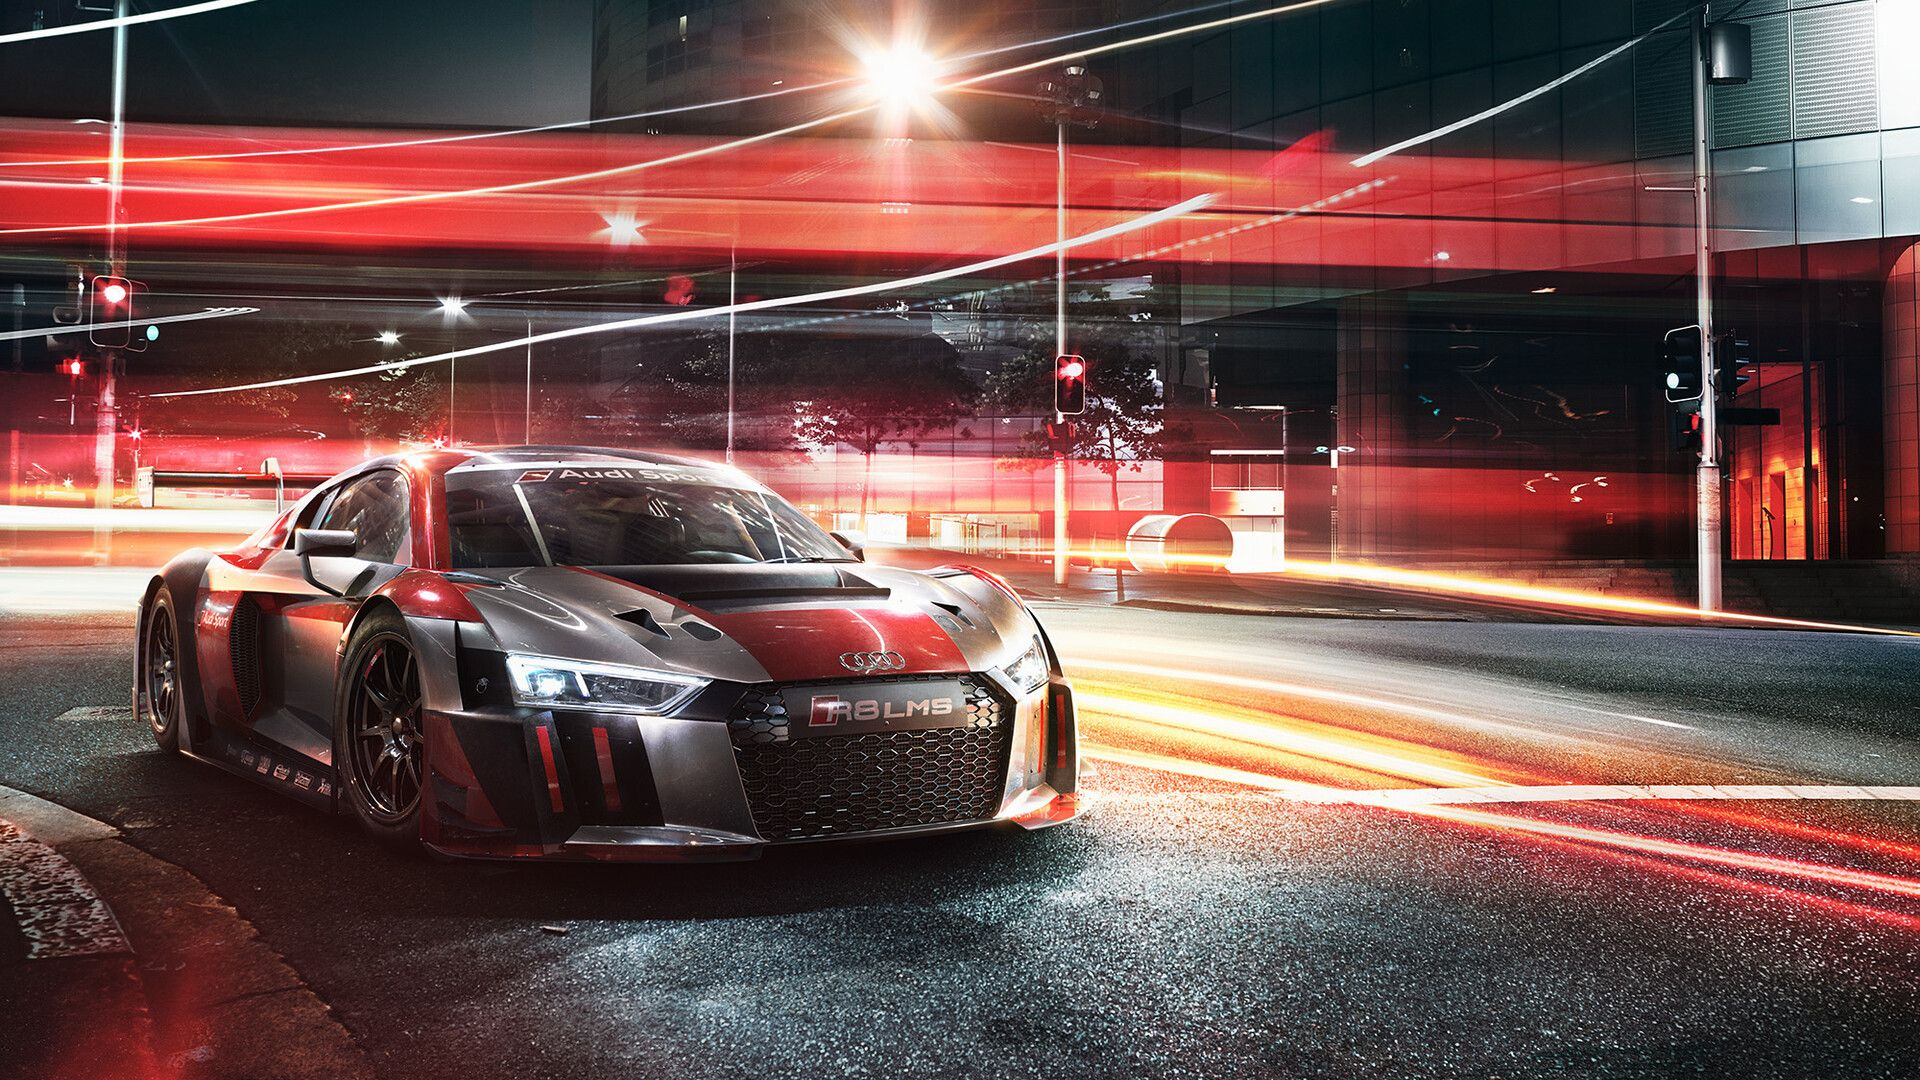 Audi R8 Lms Wallpapers Top Free Audi R8 Lms Backgrounds Wallpaperaccess